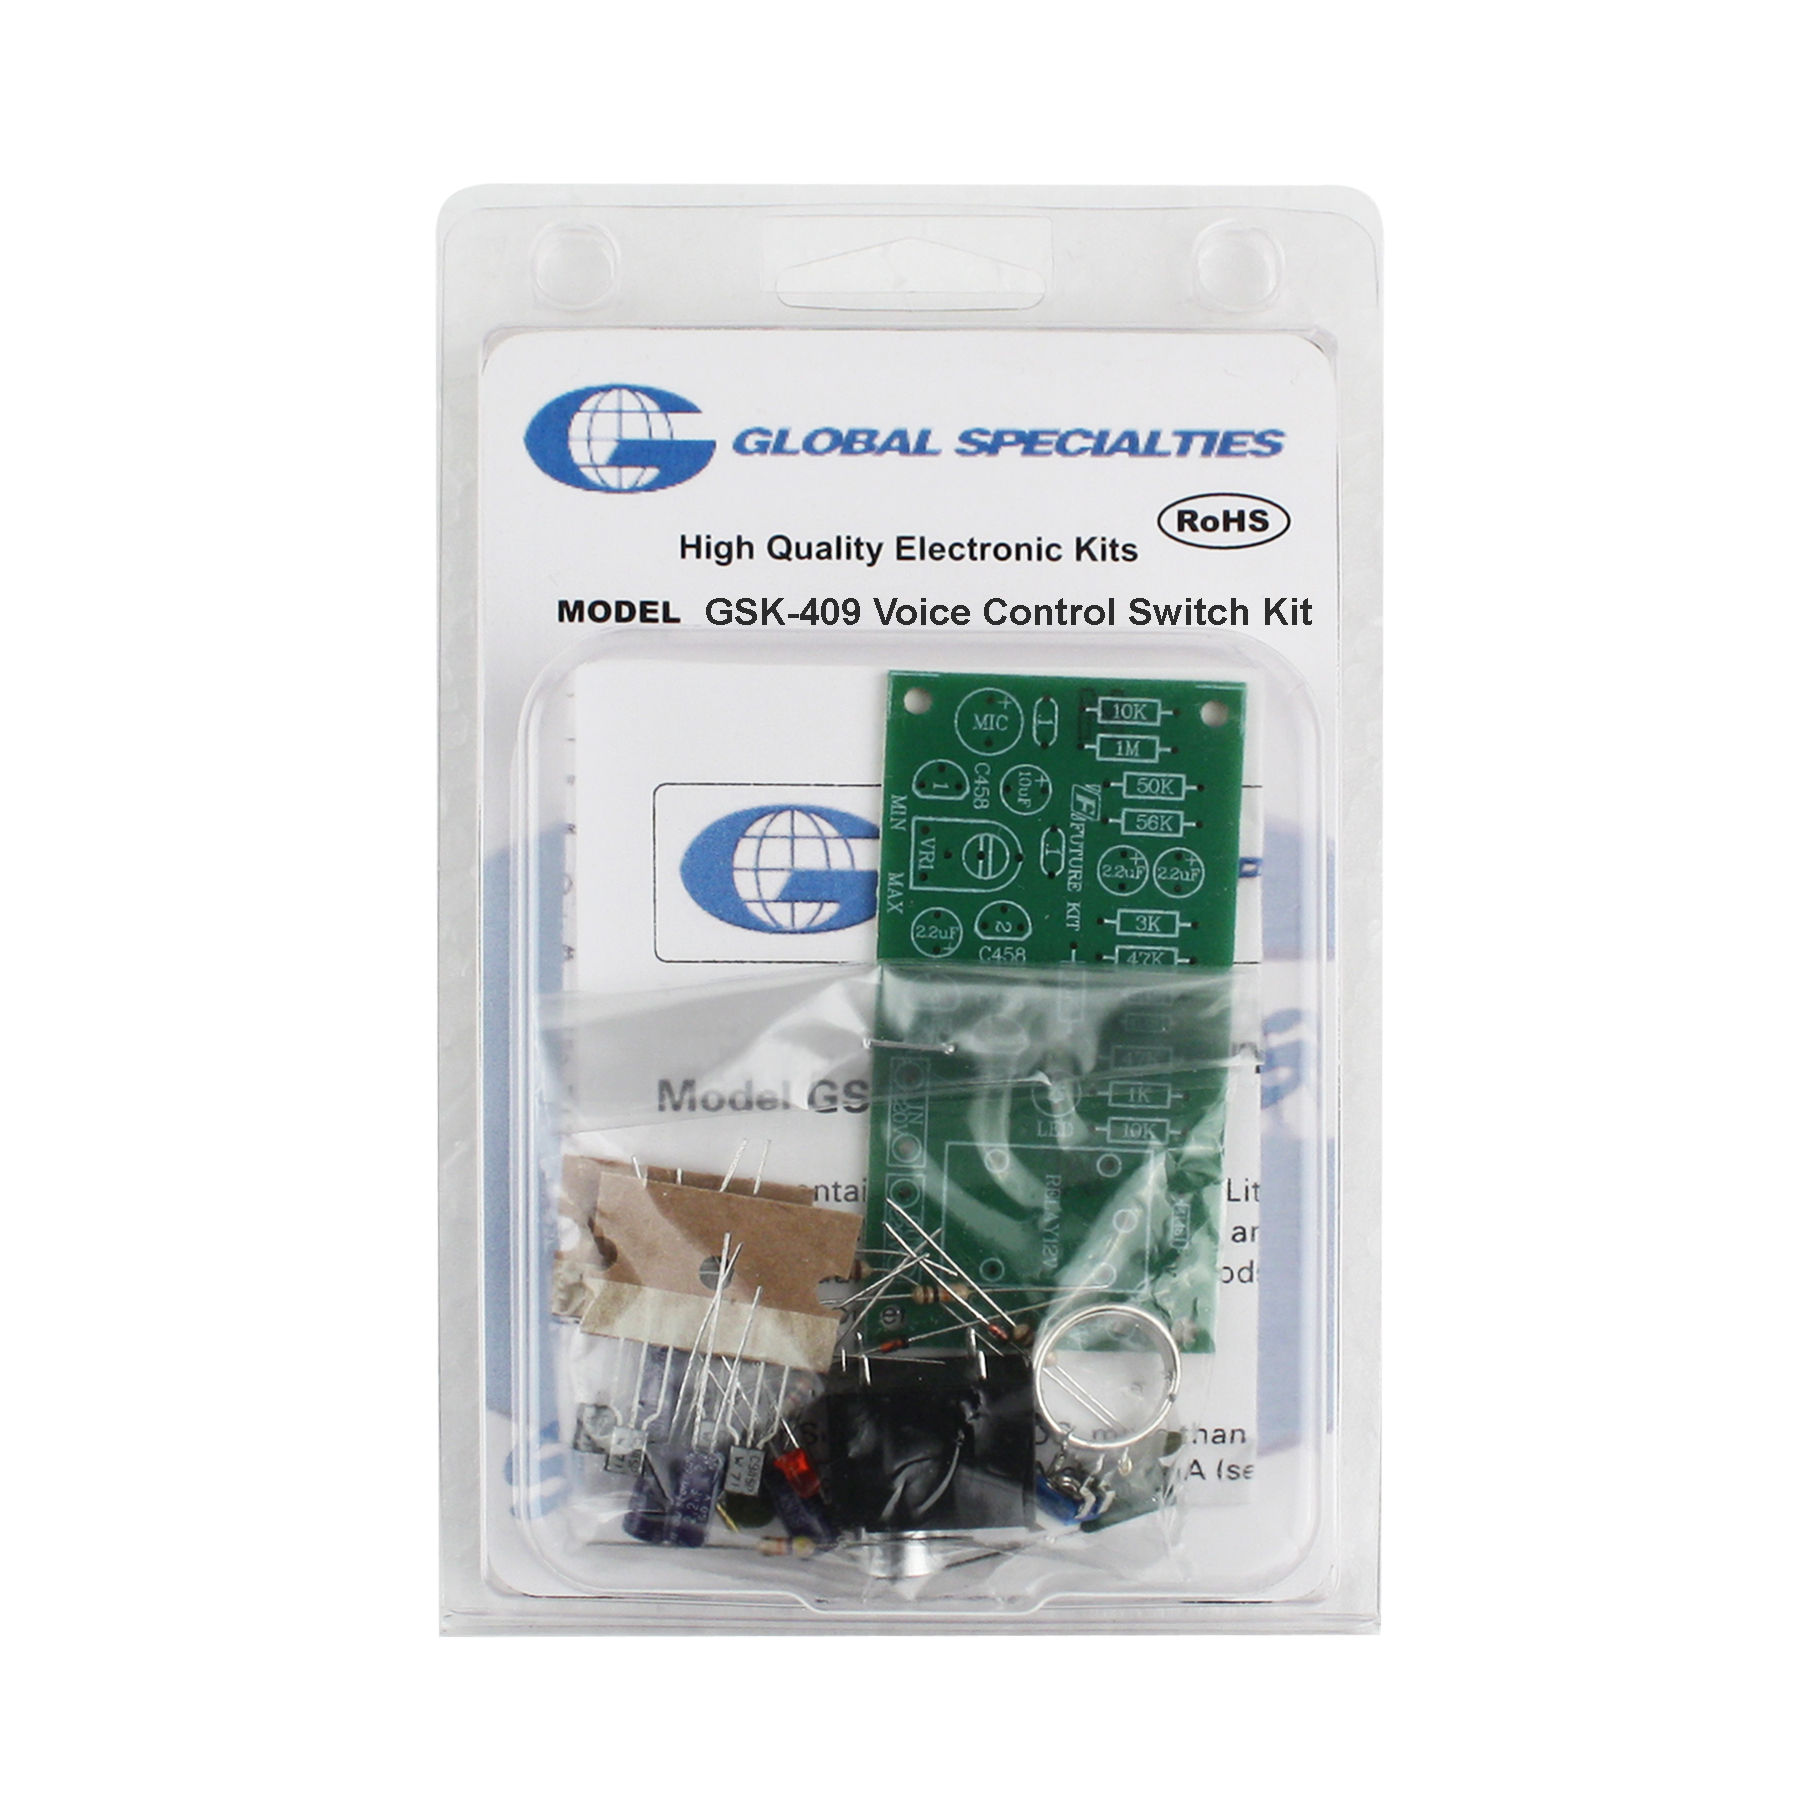 Global Specialties GSK-409 Sound Activated Control Switch Kit Photo